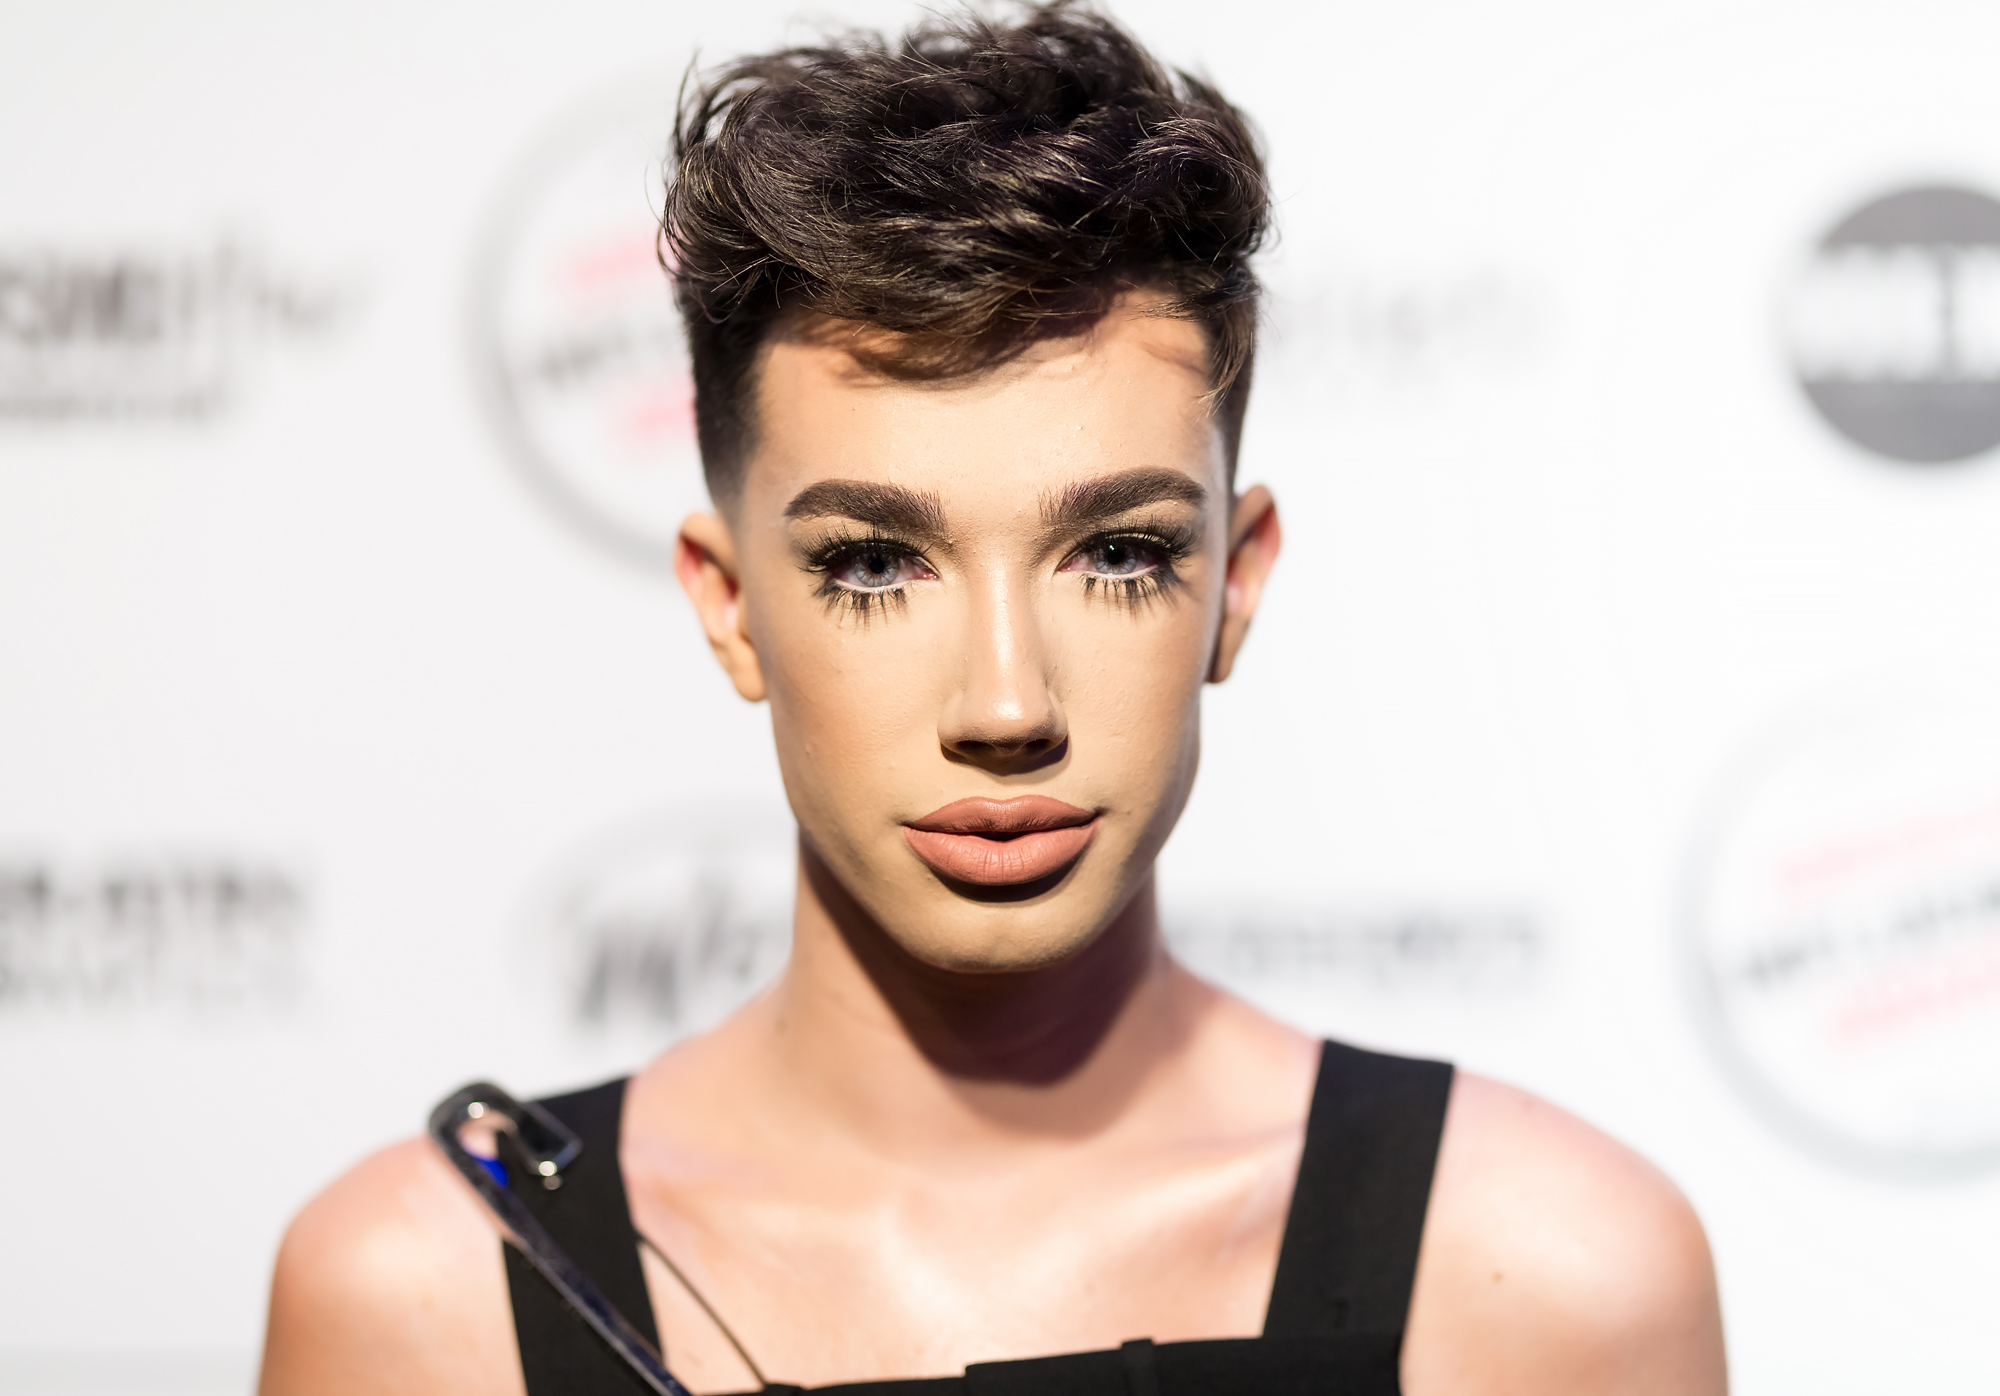 """James-Charles-covergirl - Charles made his mark on the beauty industry when he was named a CoverGirl ambassador in October 2016 at the age of 16. """"Meet @JamesCharles: makeup artist, boundary breaker, and the newest COVERGIRL!"""" the brand wrote on Instagram alongside his campaign photo at the time."""